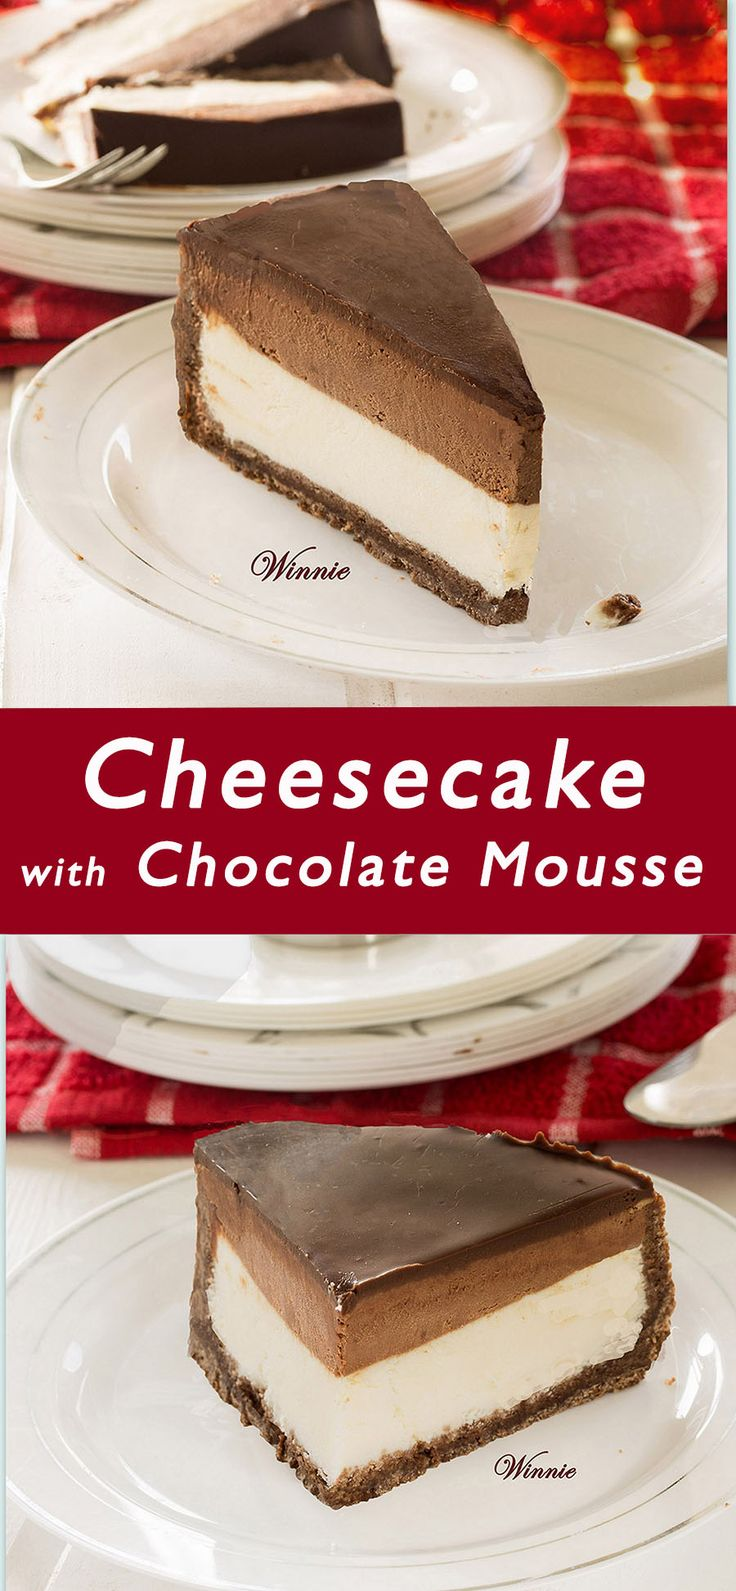 Cheesecake with Chocolate Mousse. 4-layer Cheesecake. Chocolate cookie-crust, cheesecake, chocolate mousse and chocolate ganashe.